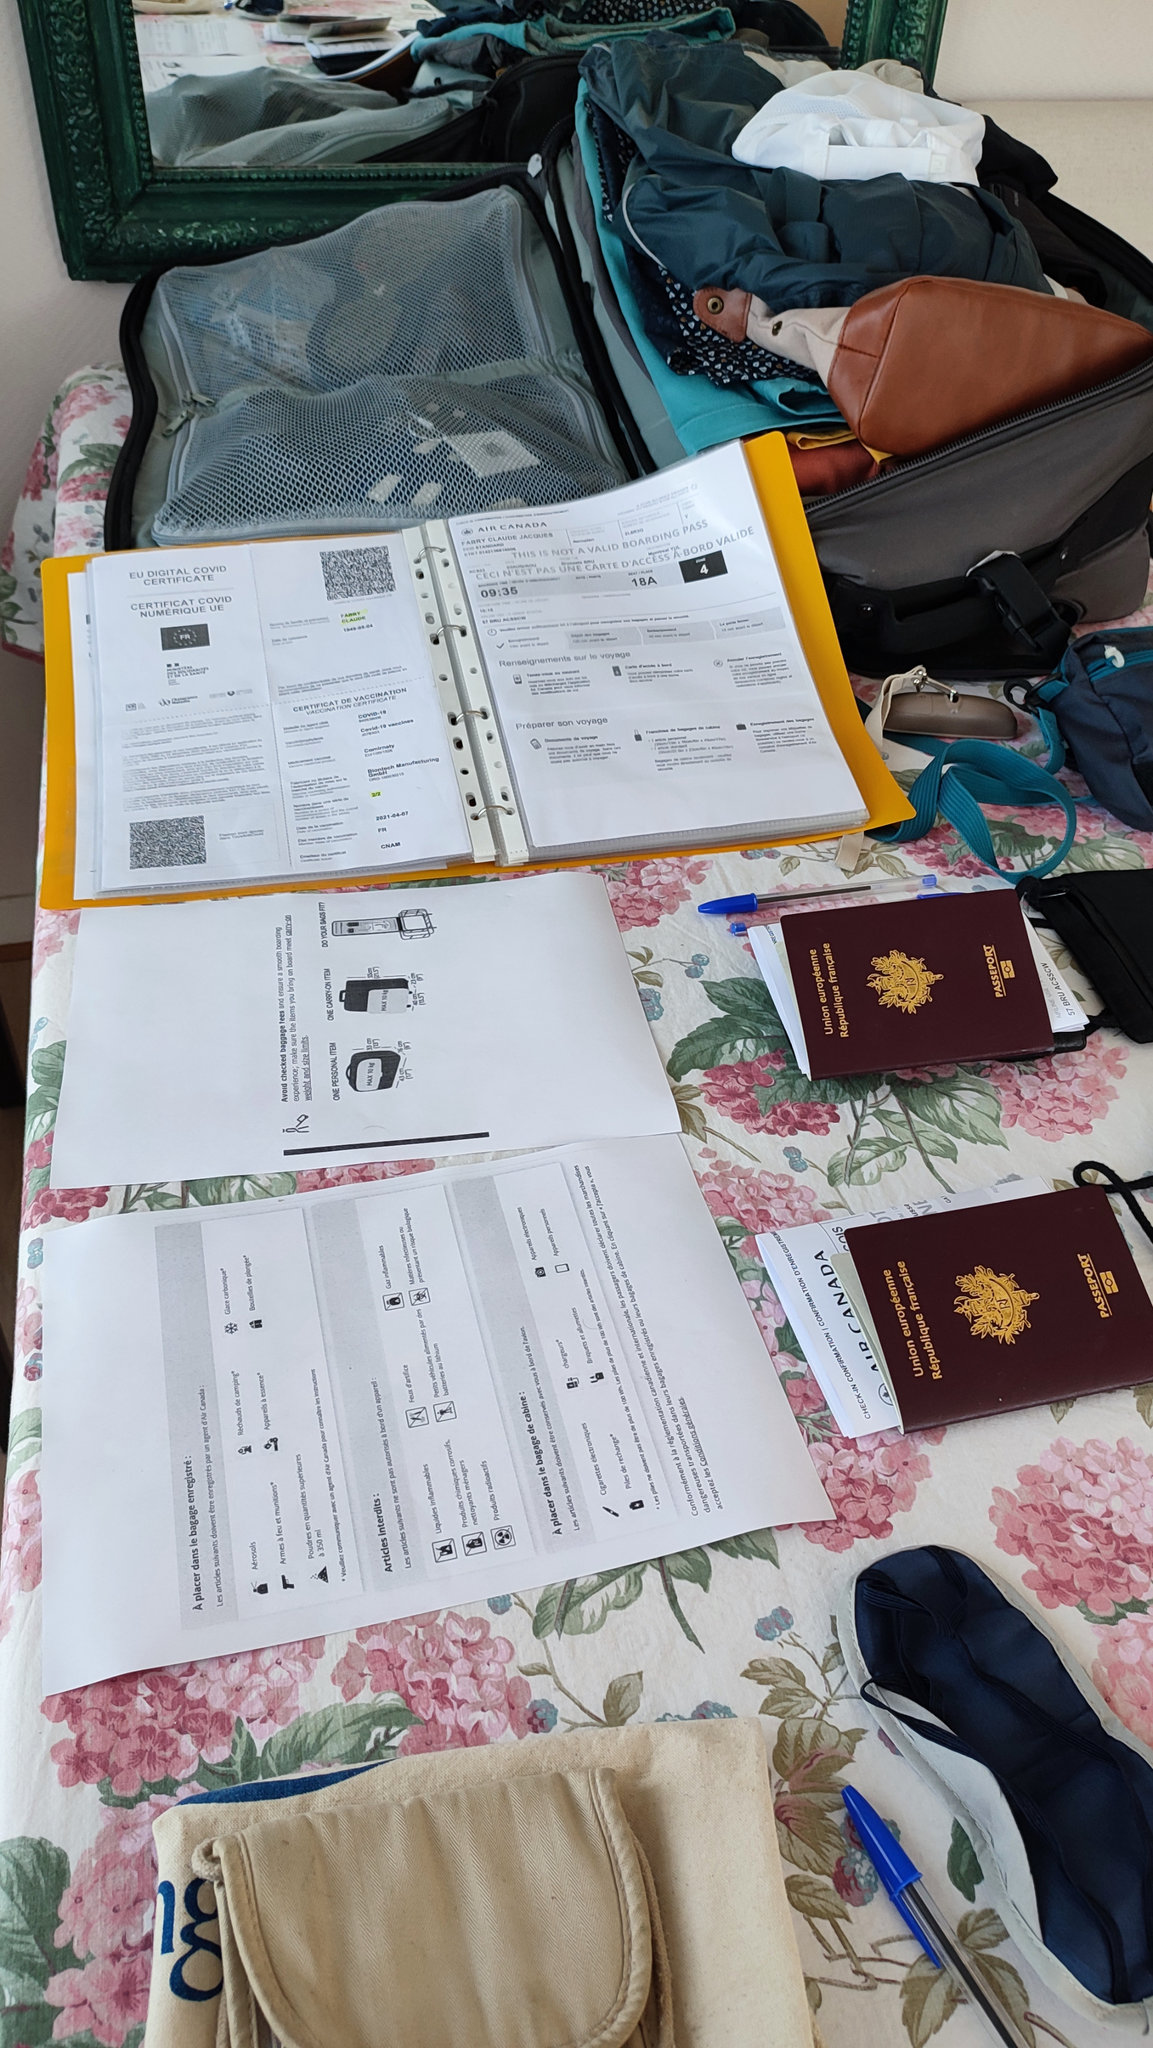 bagages, documents